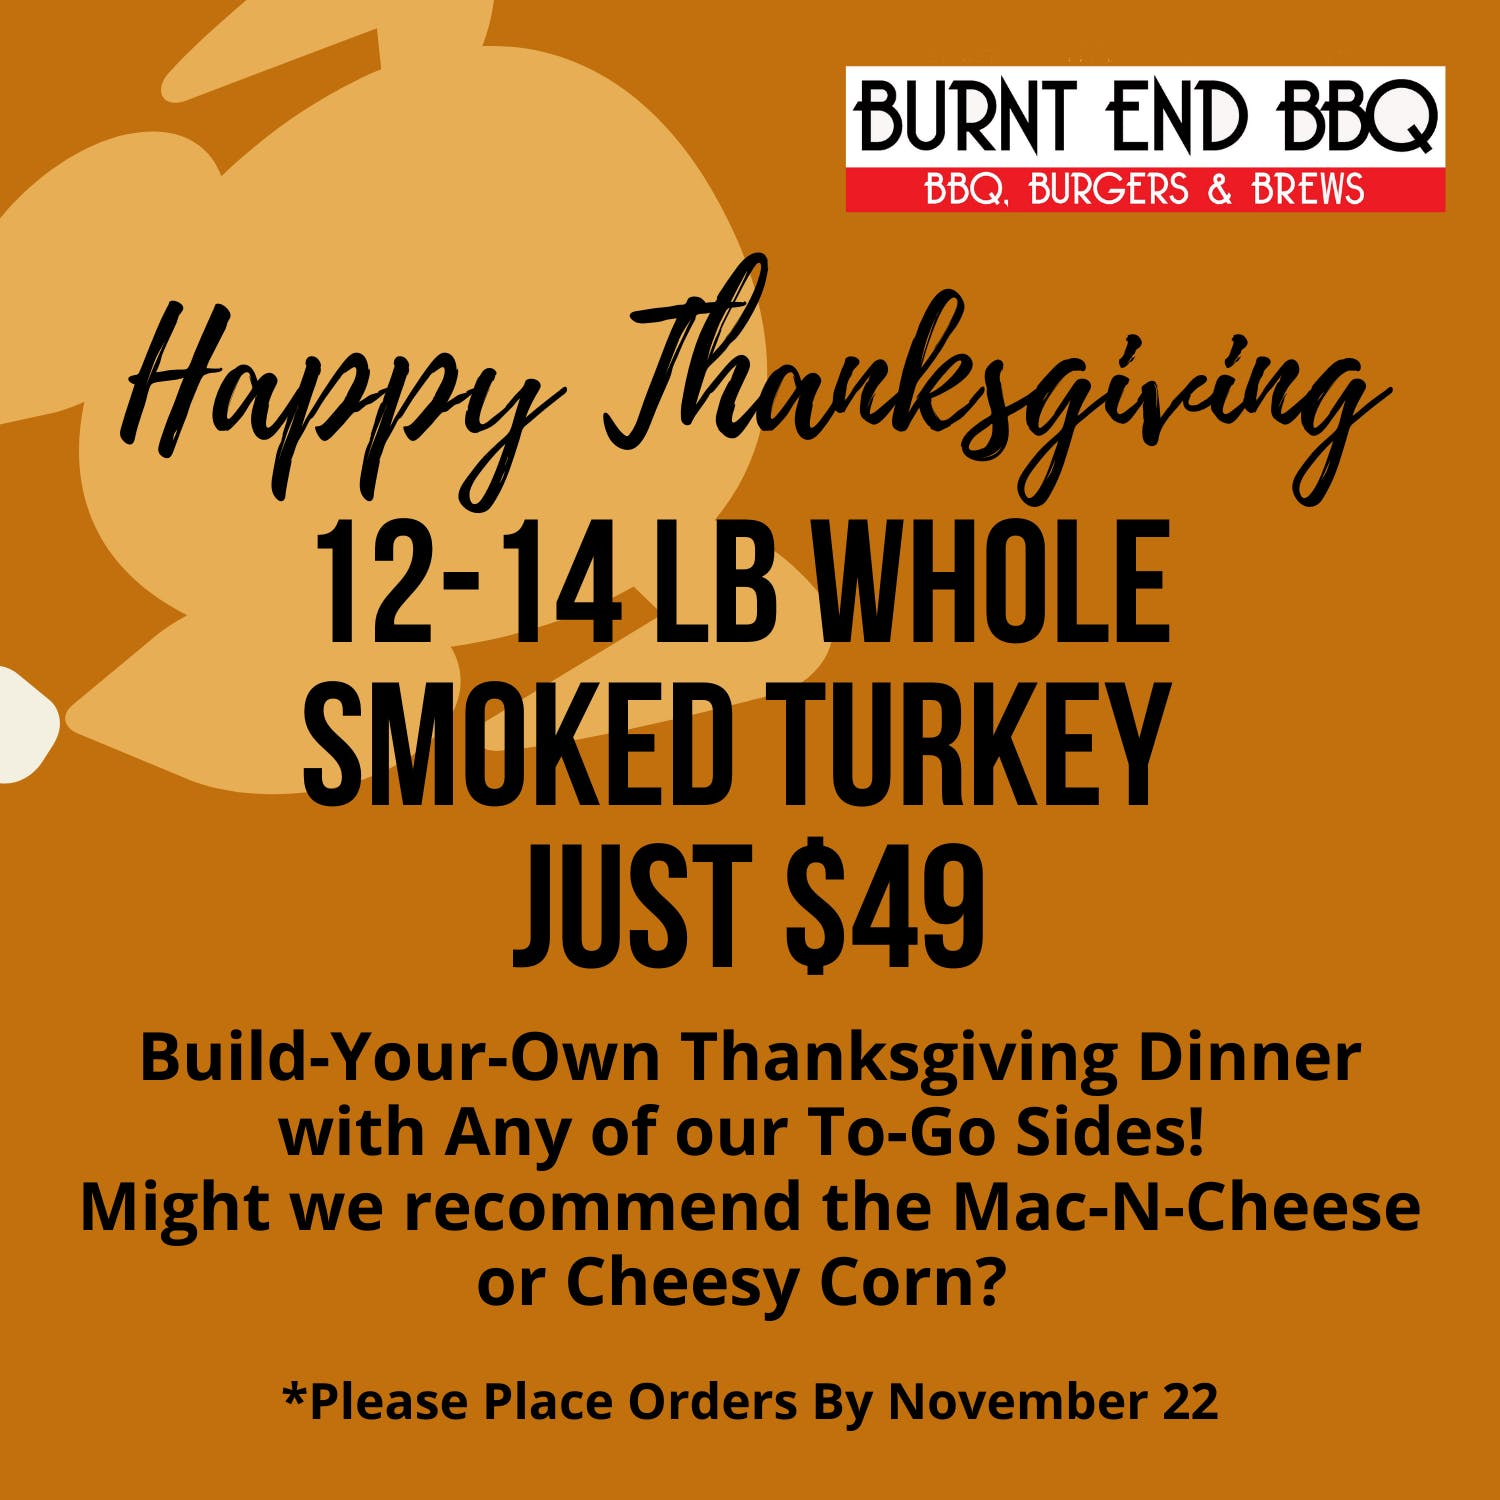 order a whole smoked turkey from burnt end bbq for just $49